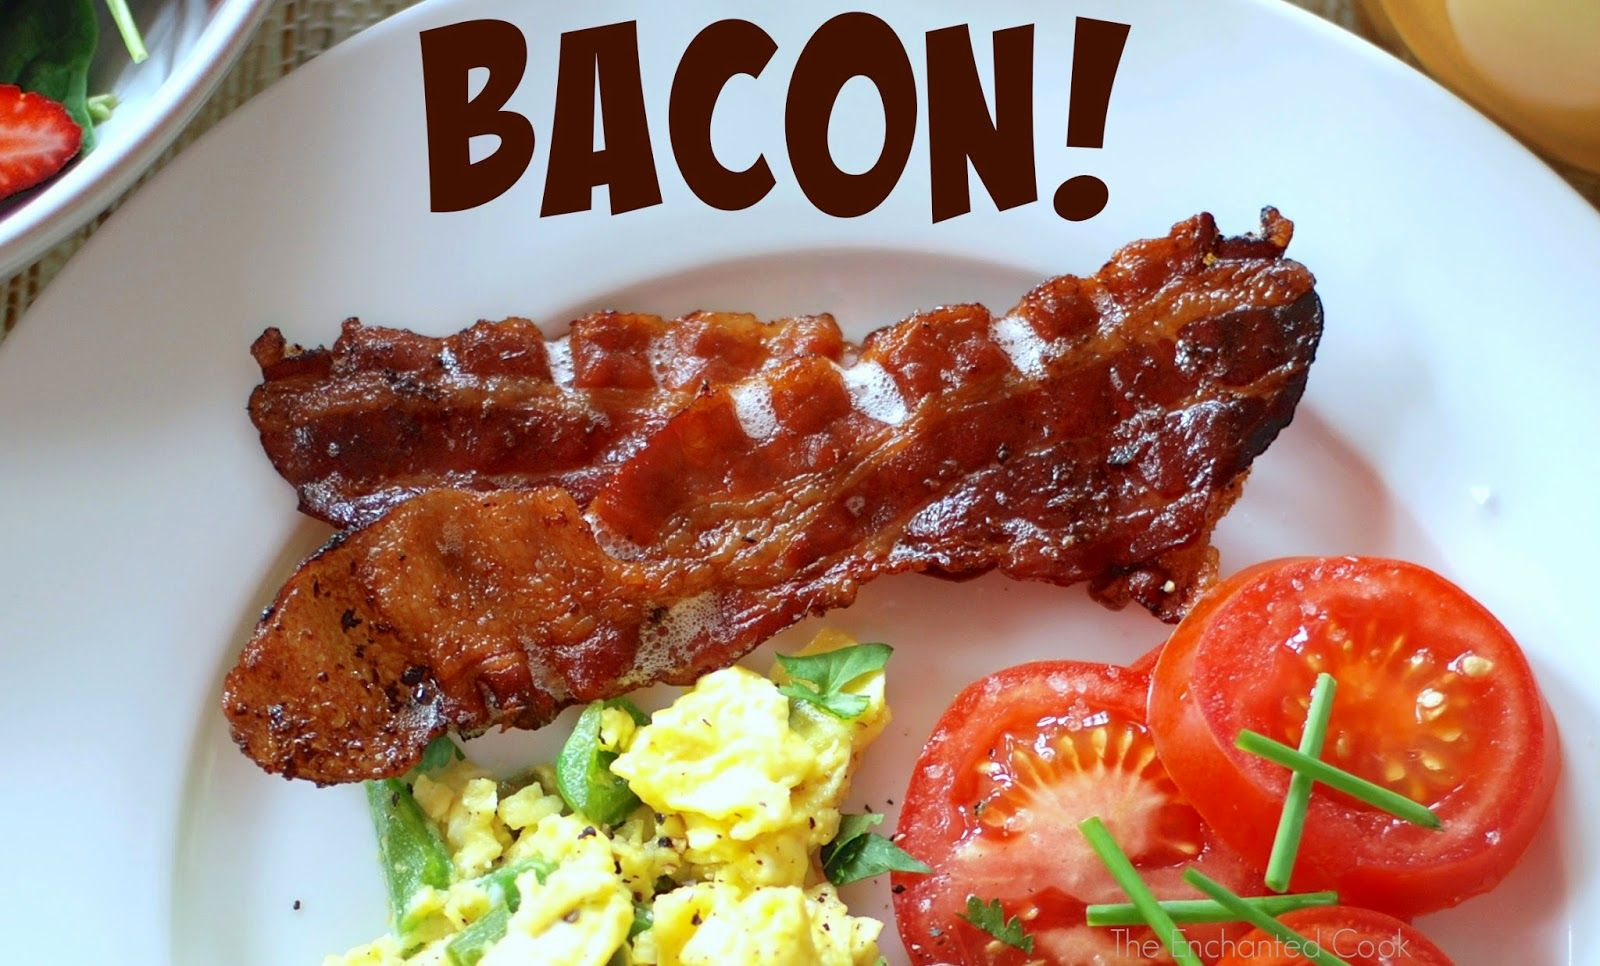 Applegate Sunday Bacon Is My Favorite And Here's How To Make It Perfect  Every Time!